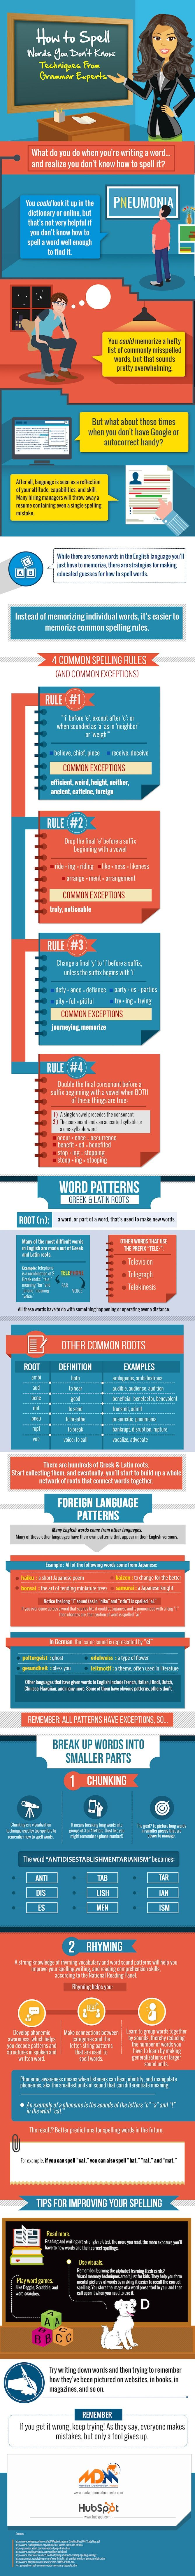 How to Spell Words You Don't Know: Techniques From Grammar Experts [Infographic], via @HubSpot